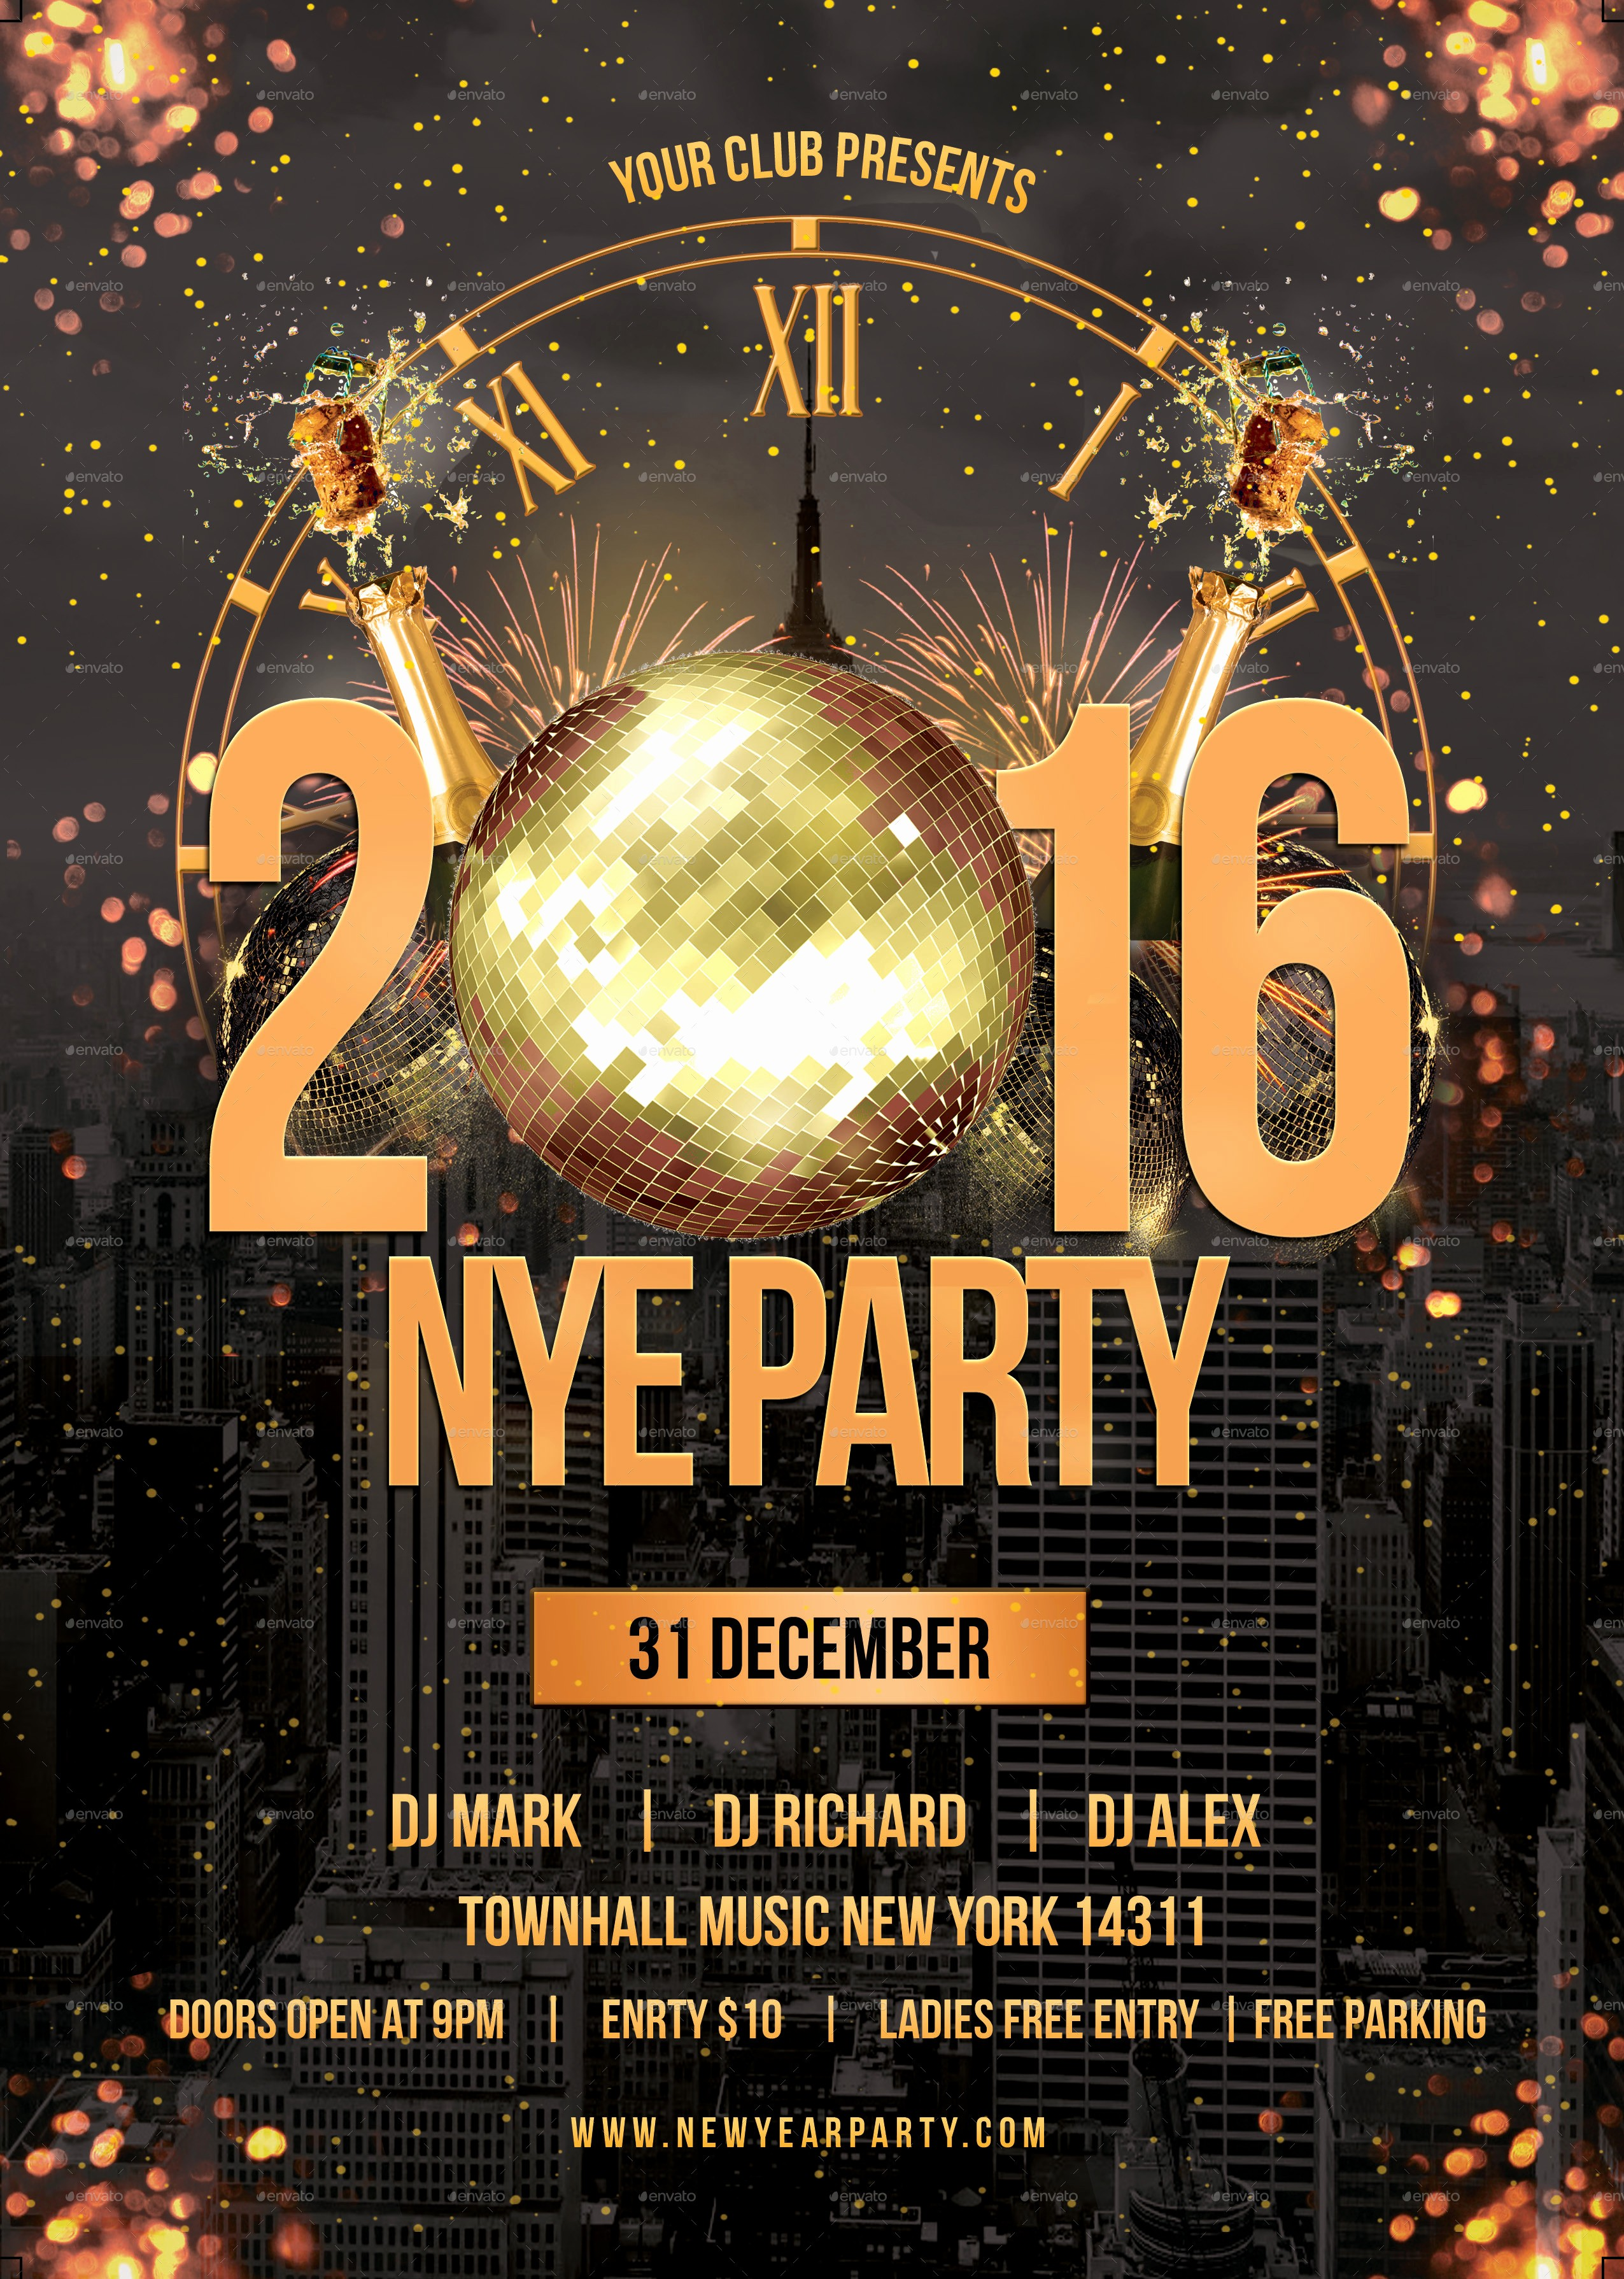 New Years Eve Party Checklist Awesome Free New Years Eve Flyer Template Portablegasgrillweber